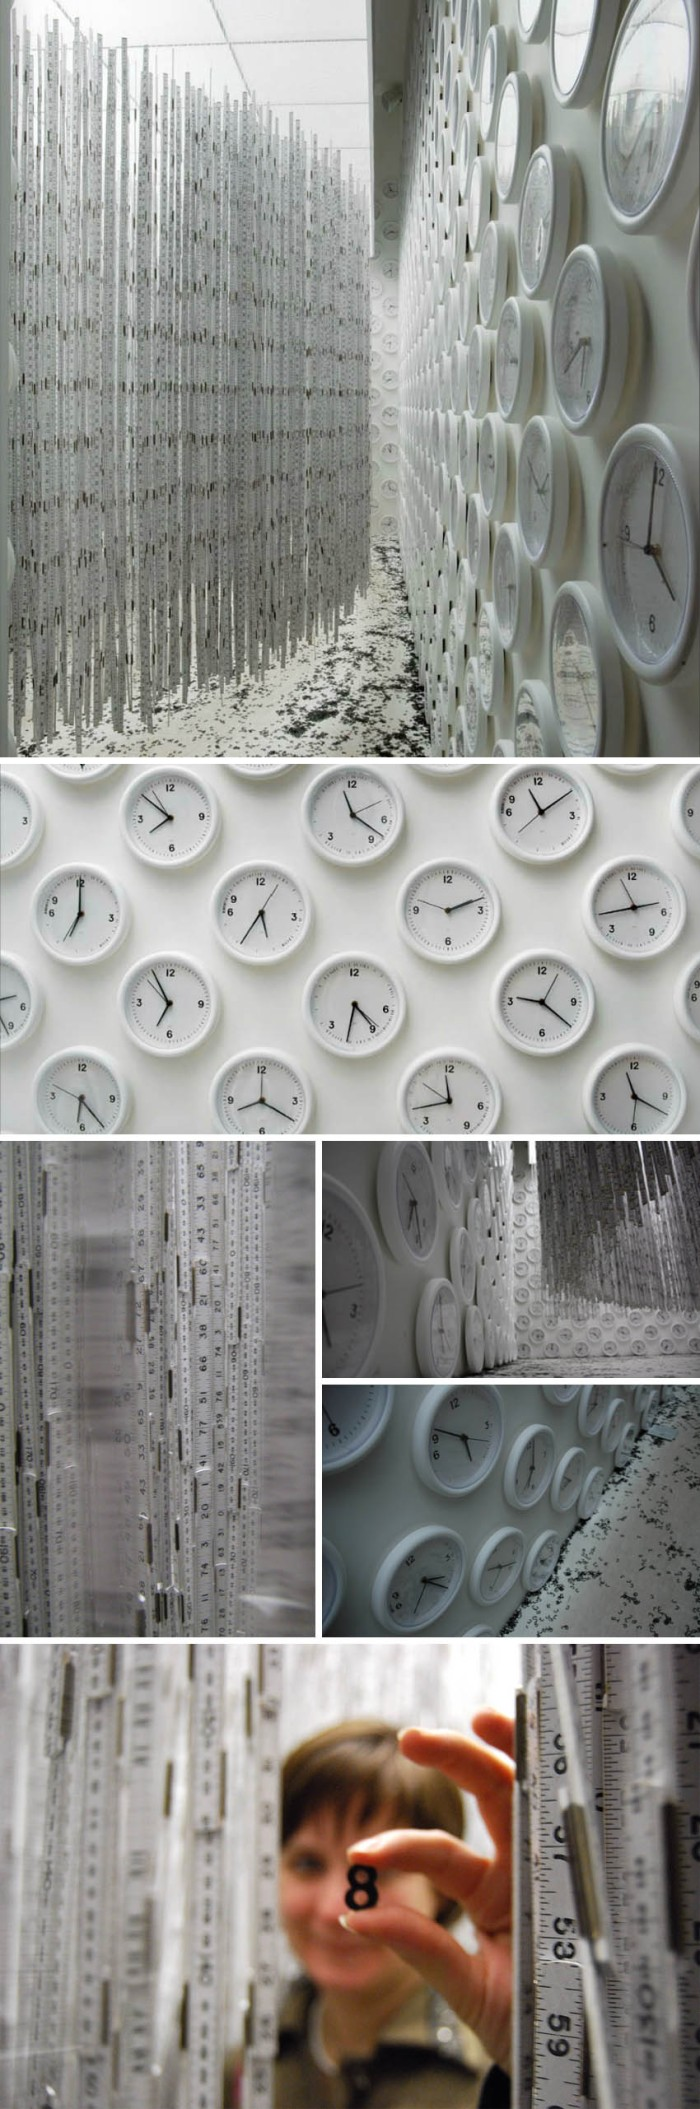 Cool art installation, hanging rulers, wall clocks and vinyl type, interactive art, Brazilian contemporary art, Cildo Meireles